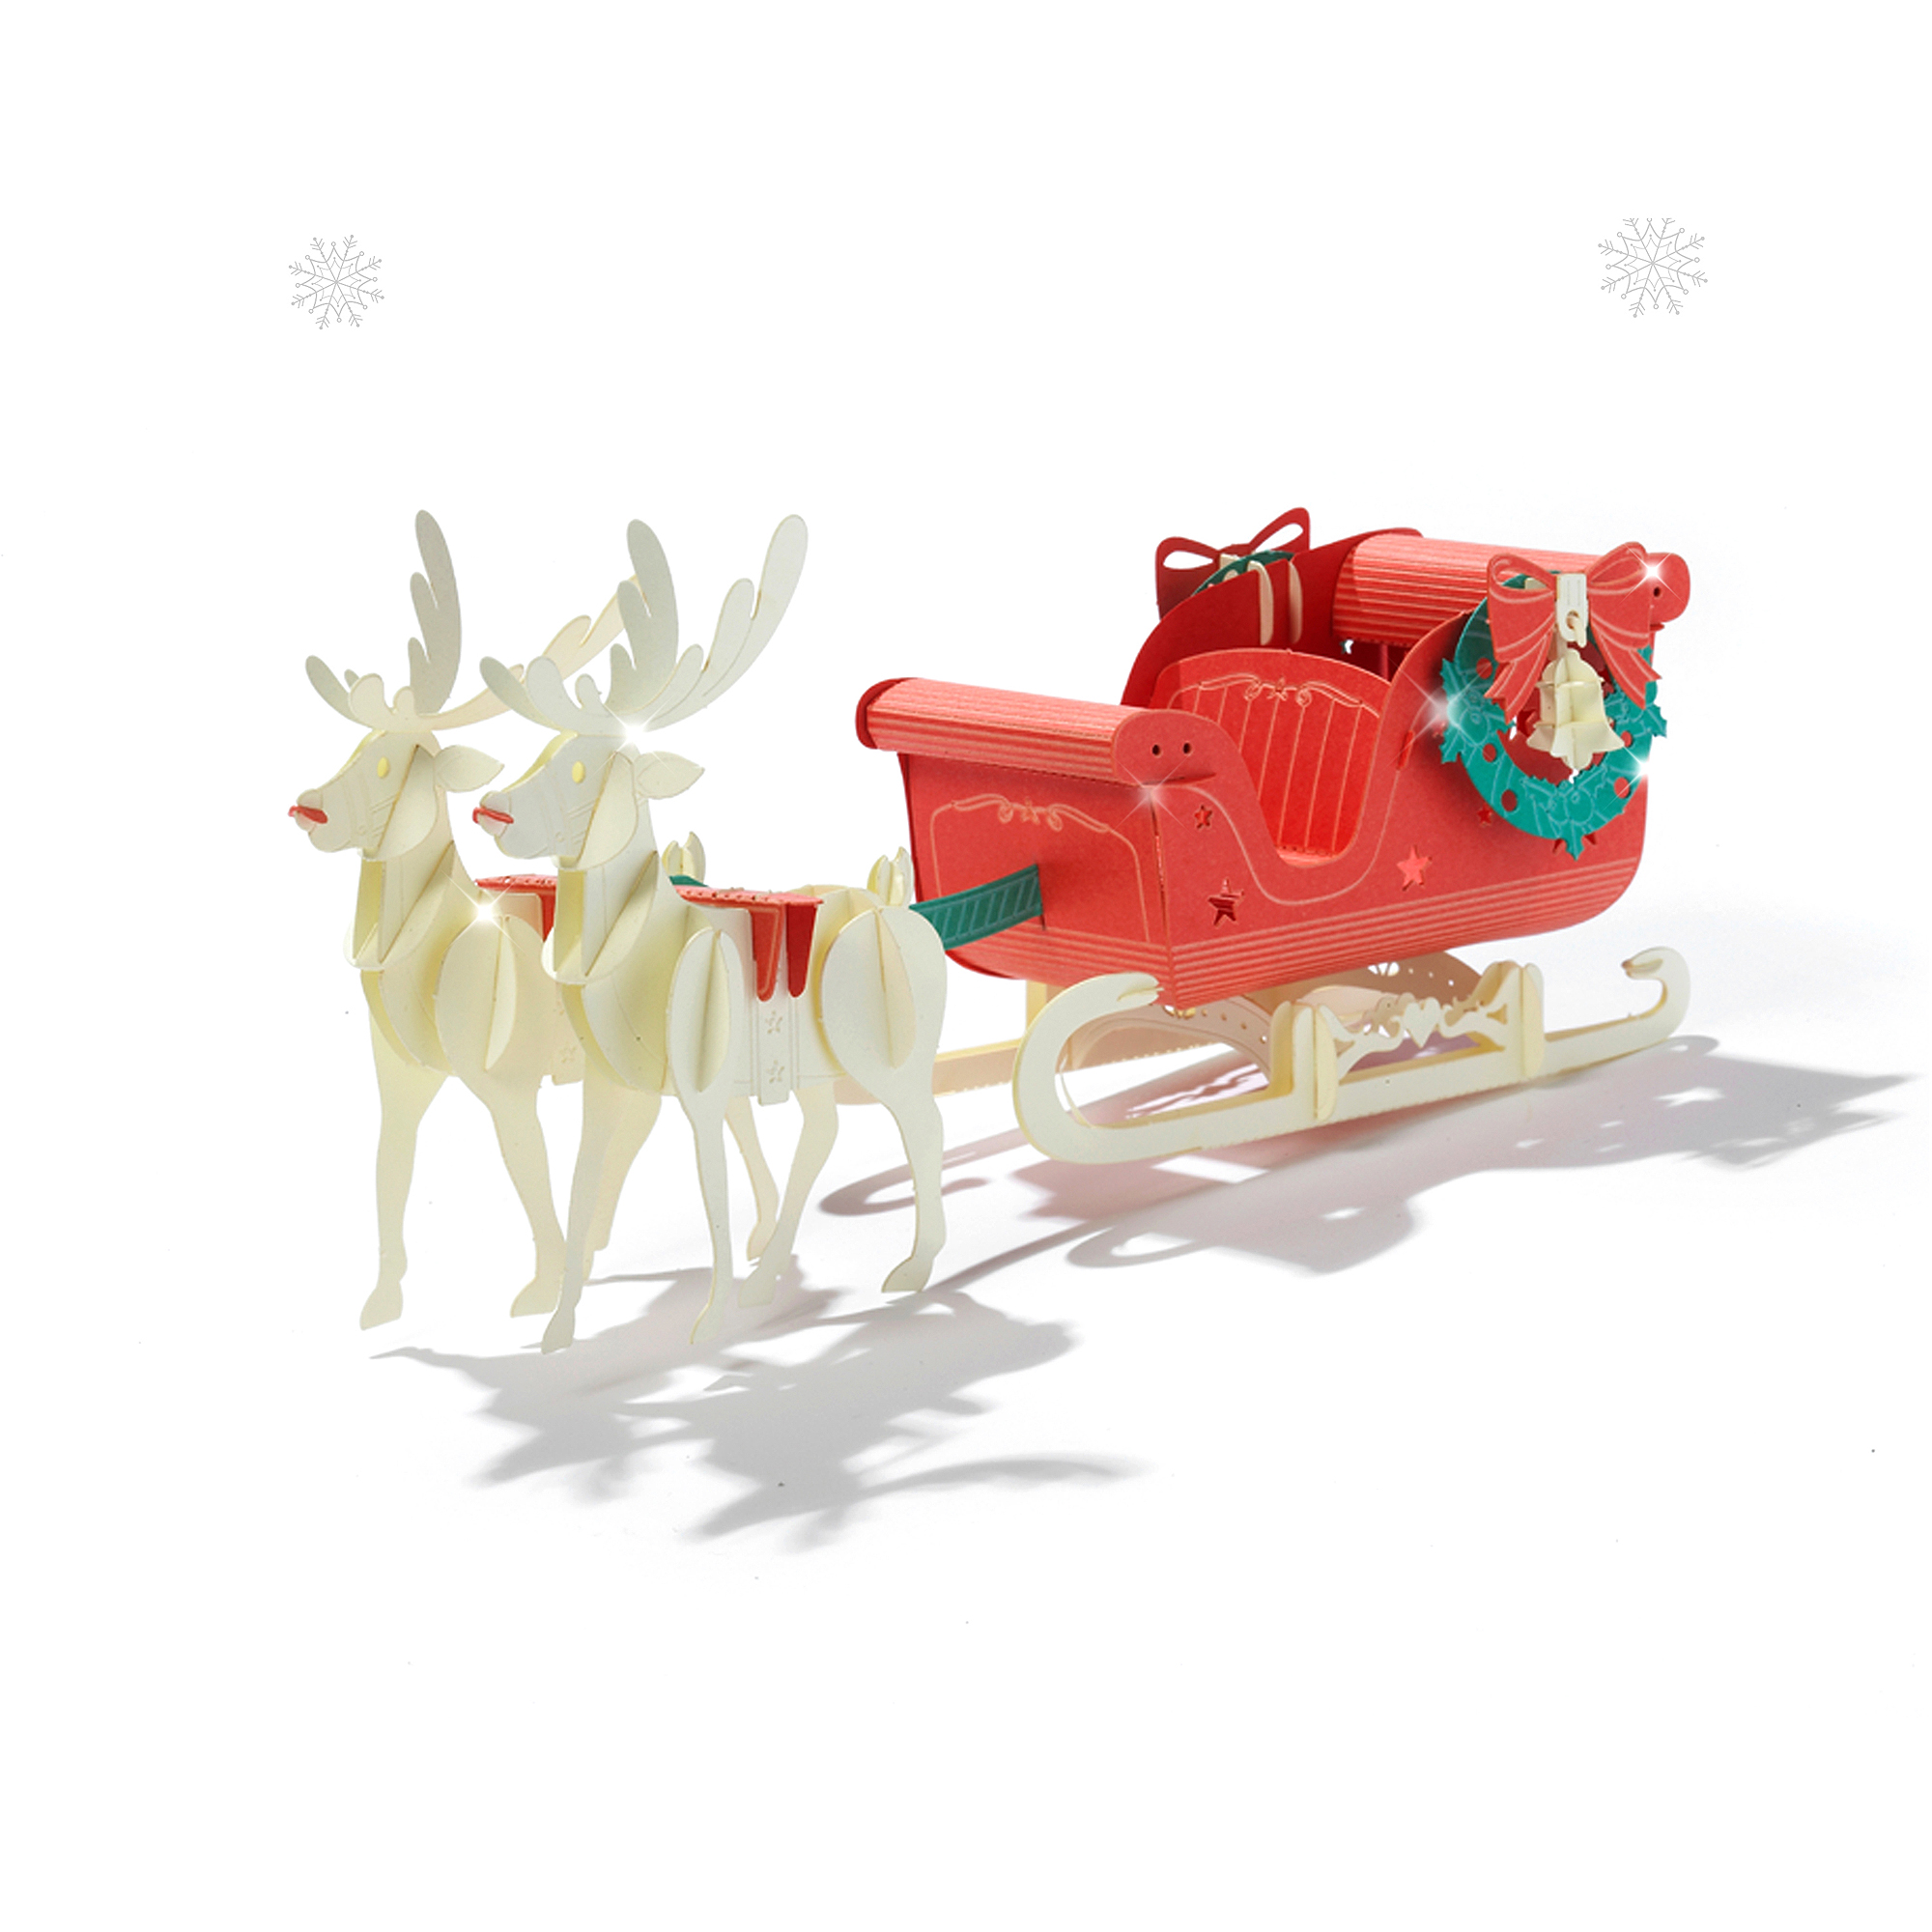 Papero Rudolph Sled Assemblage Kit, Red